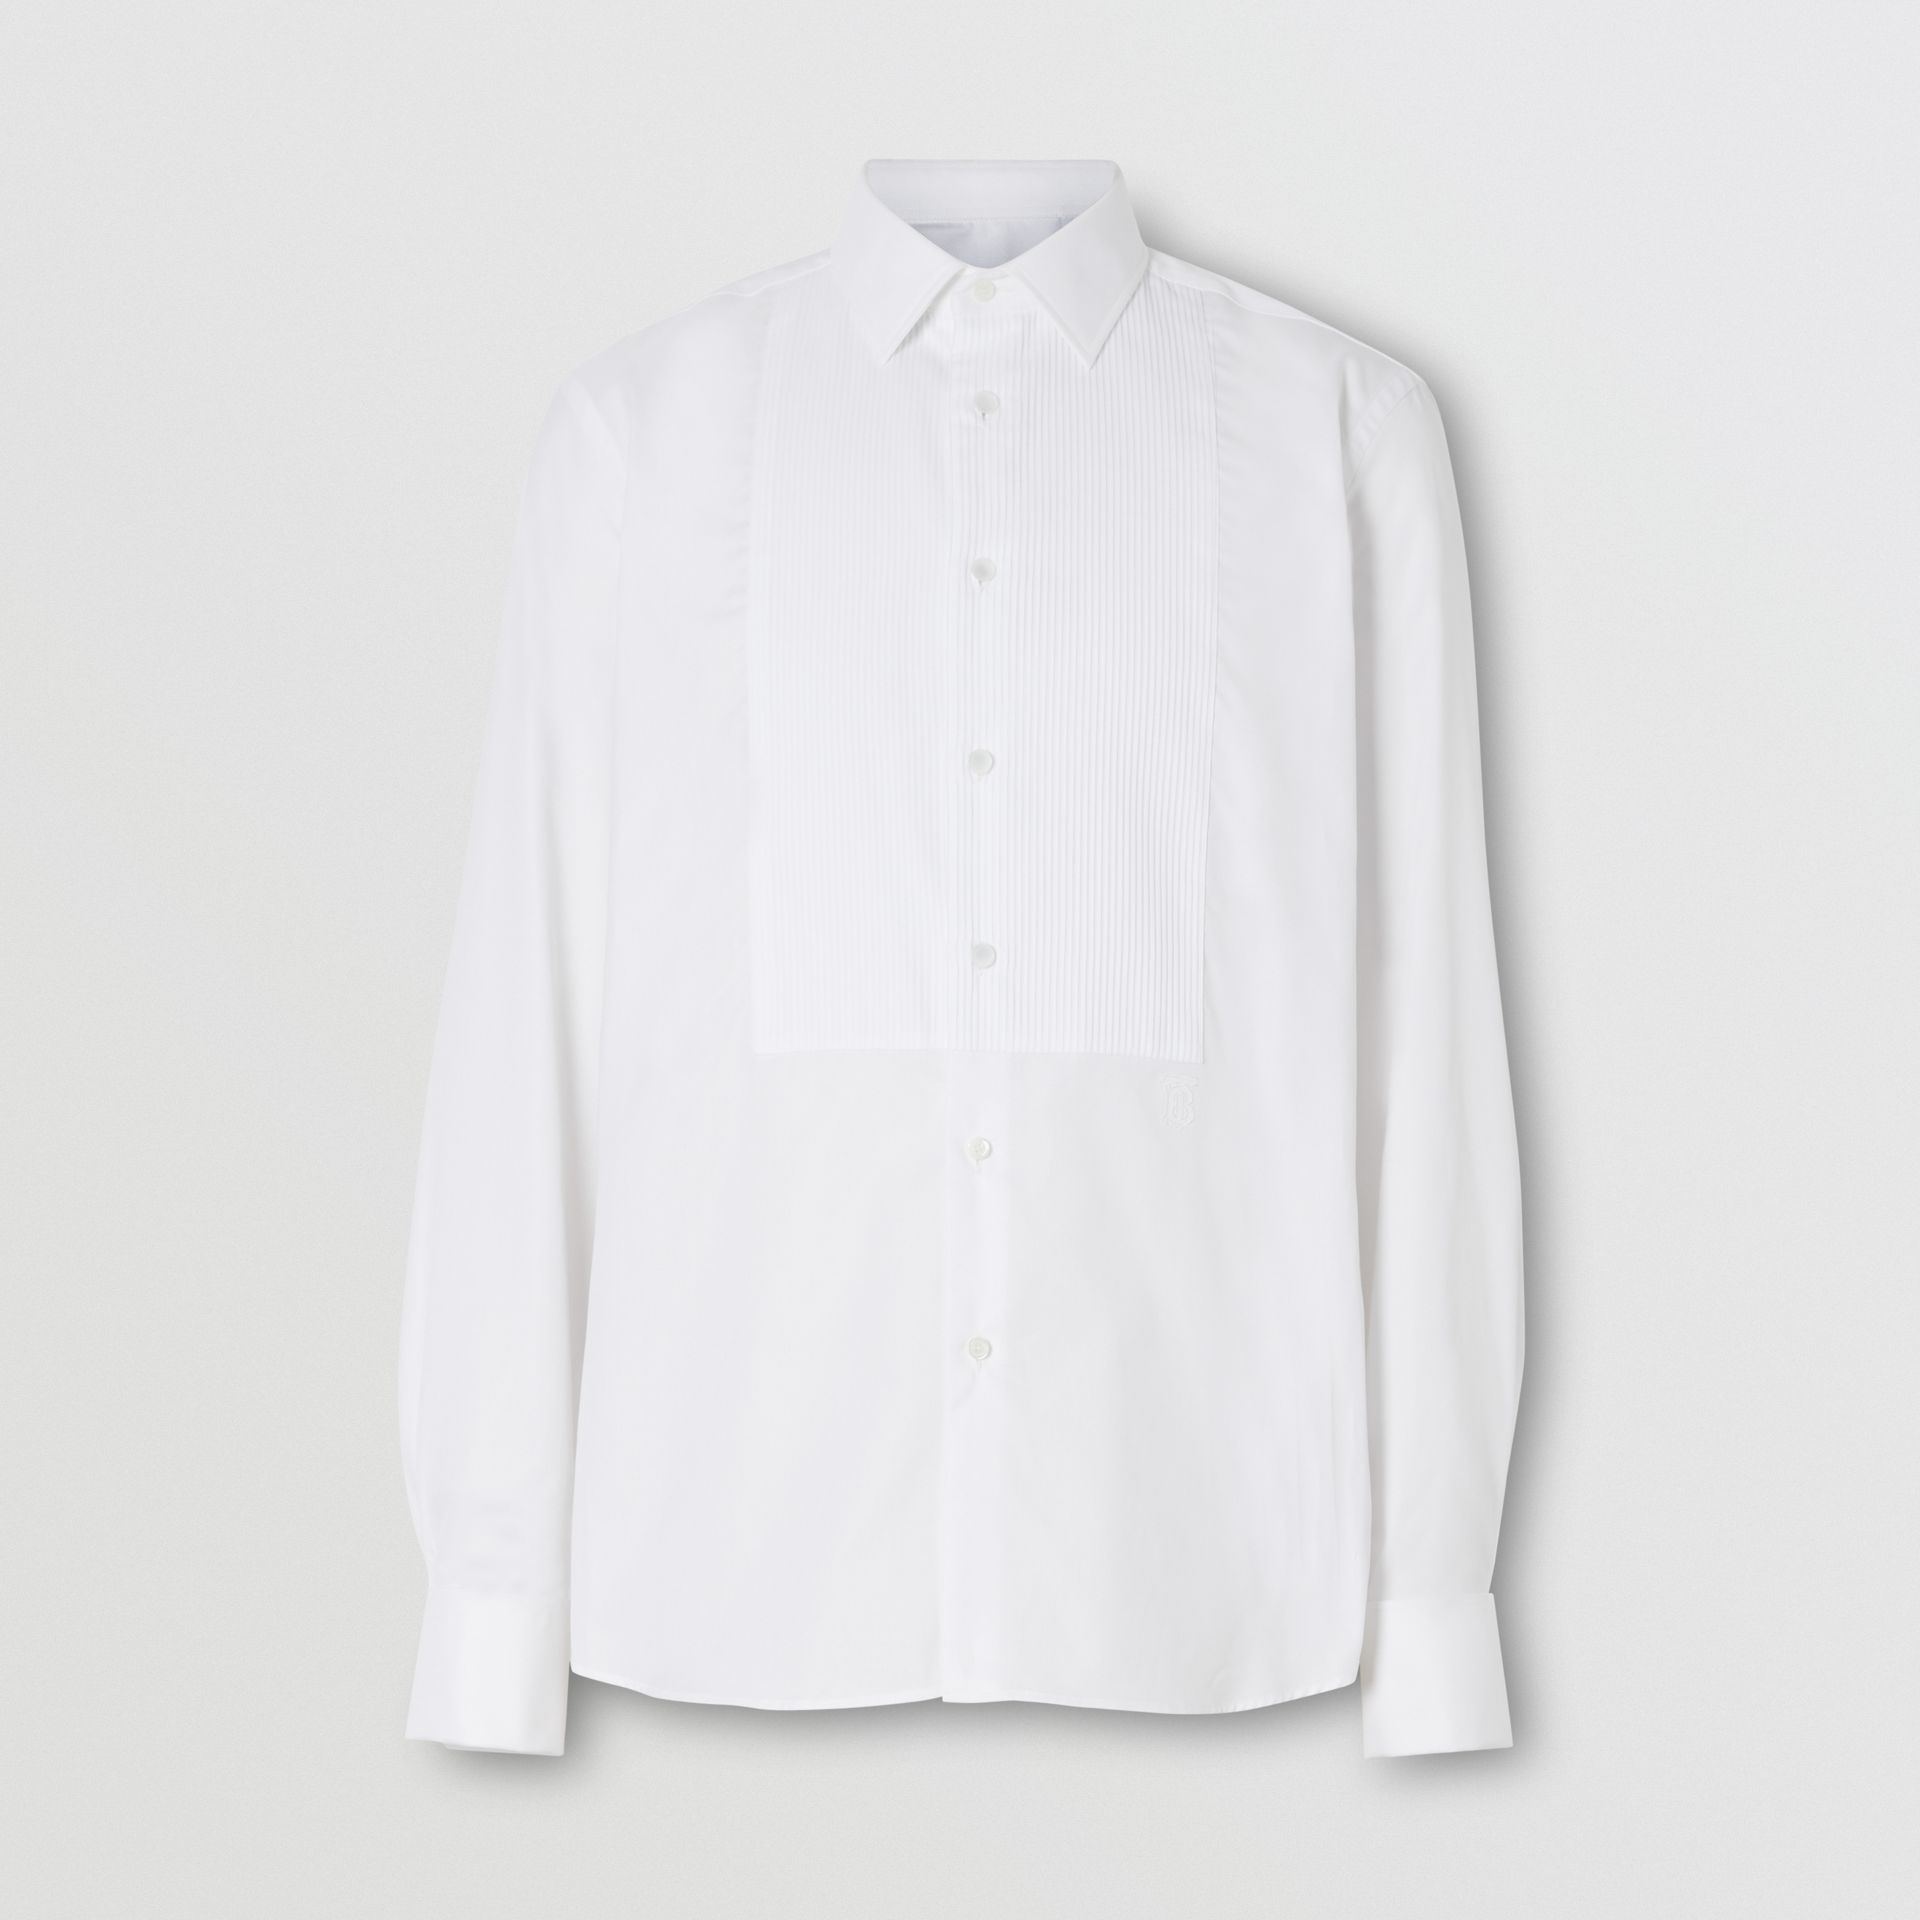 Ribbed Bib Cotton Oxford Dress Shirt in White - Men | Burberry - gallery image 3